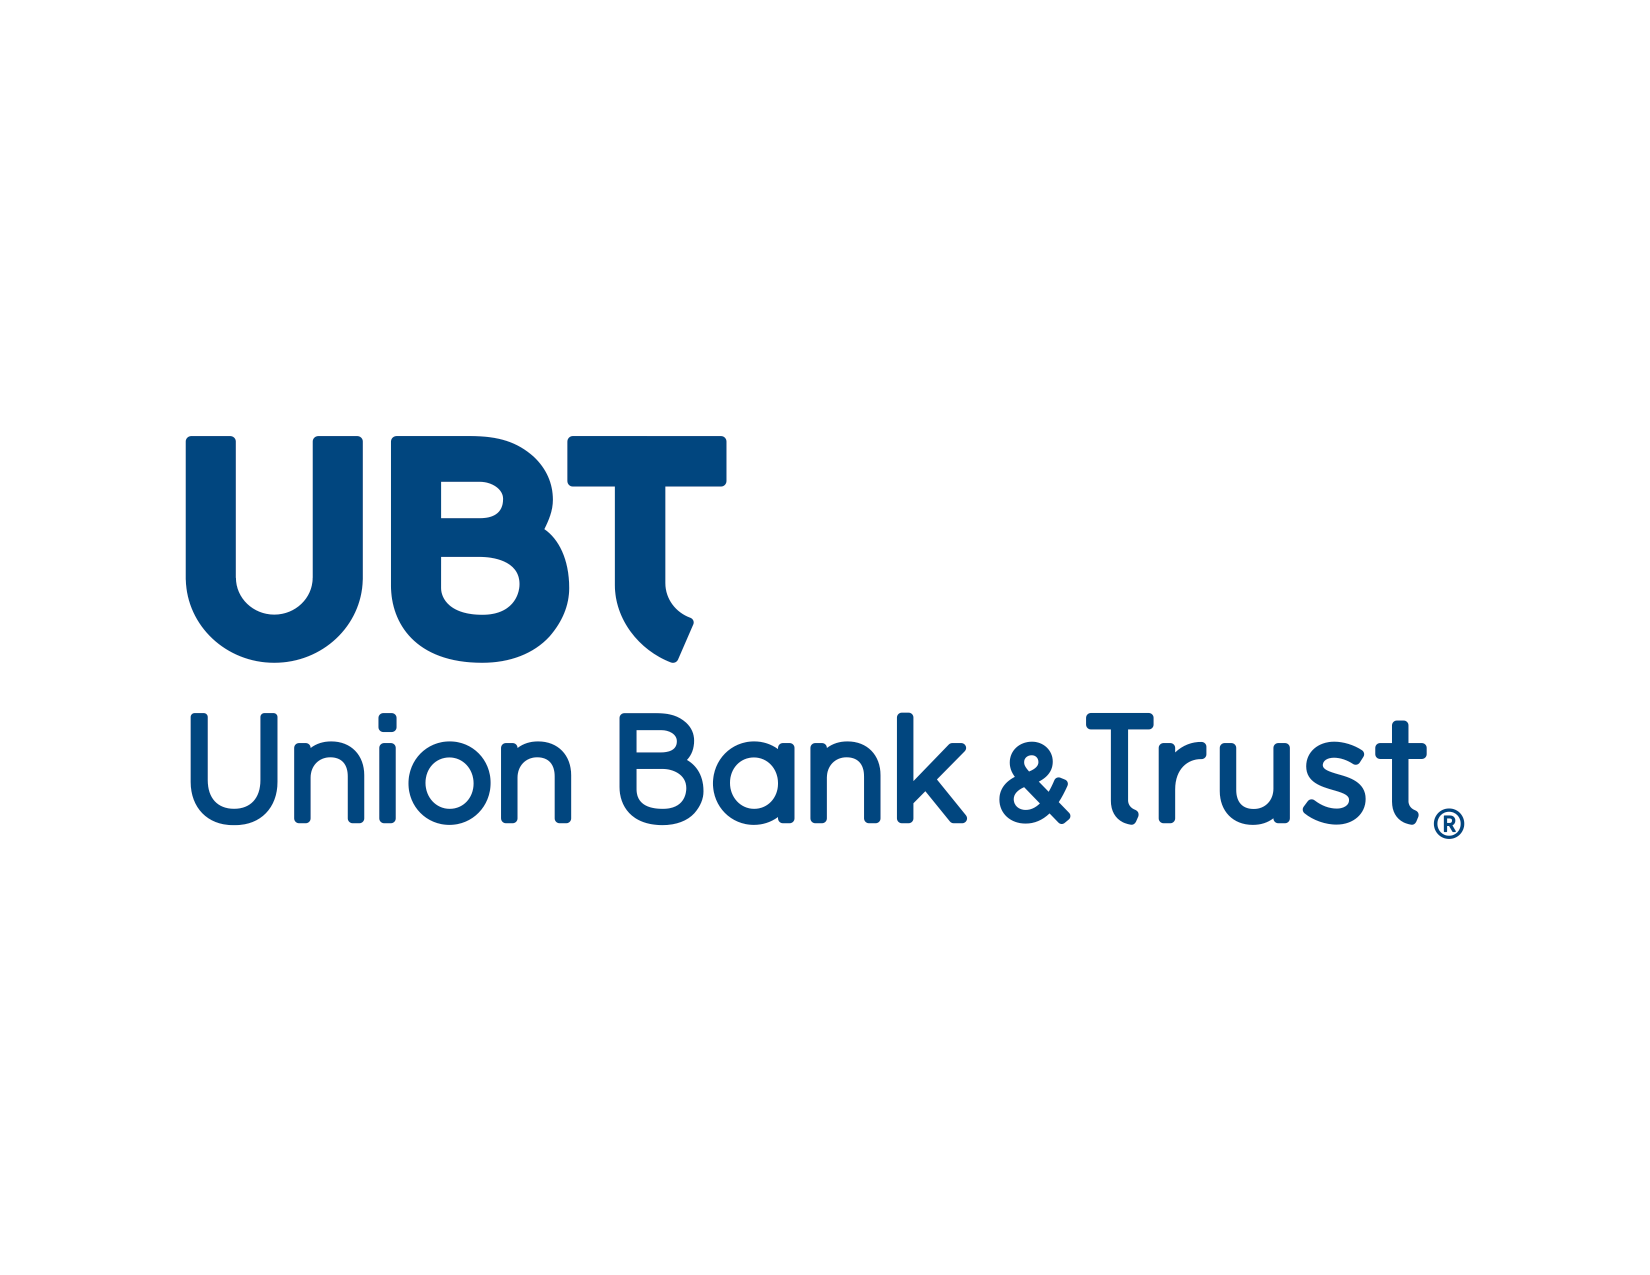 Union Bank & Trust Donates $5,000 to Local FFA Chapters through Grant